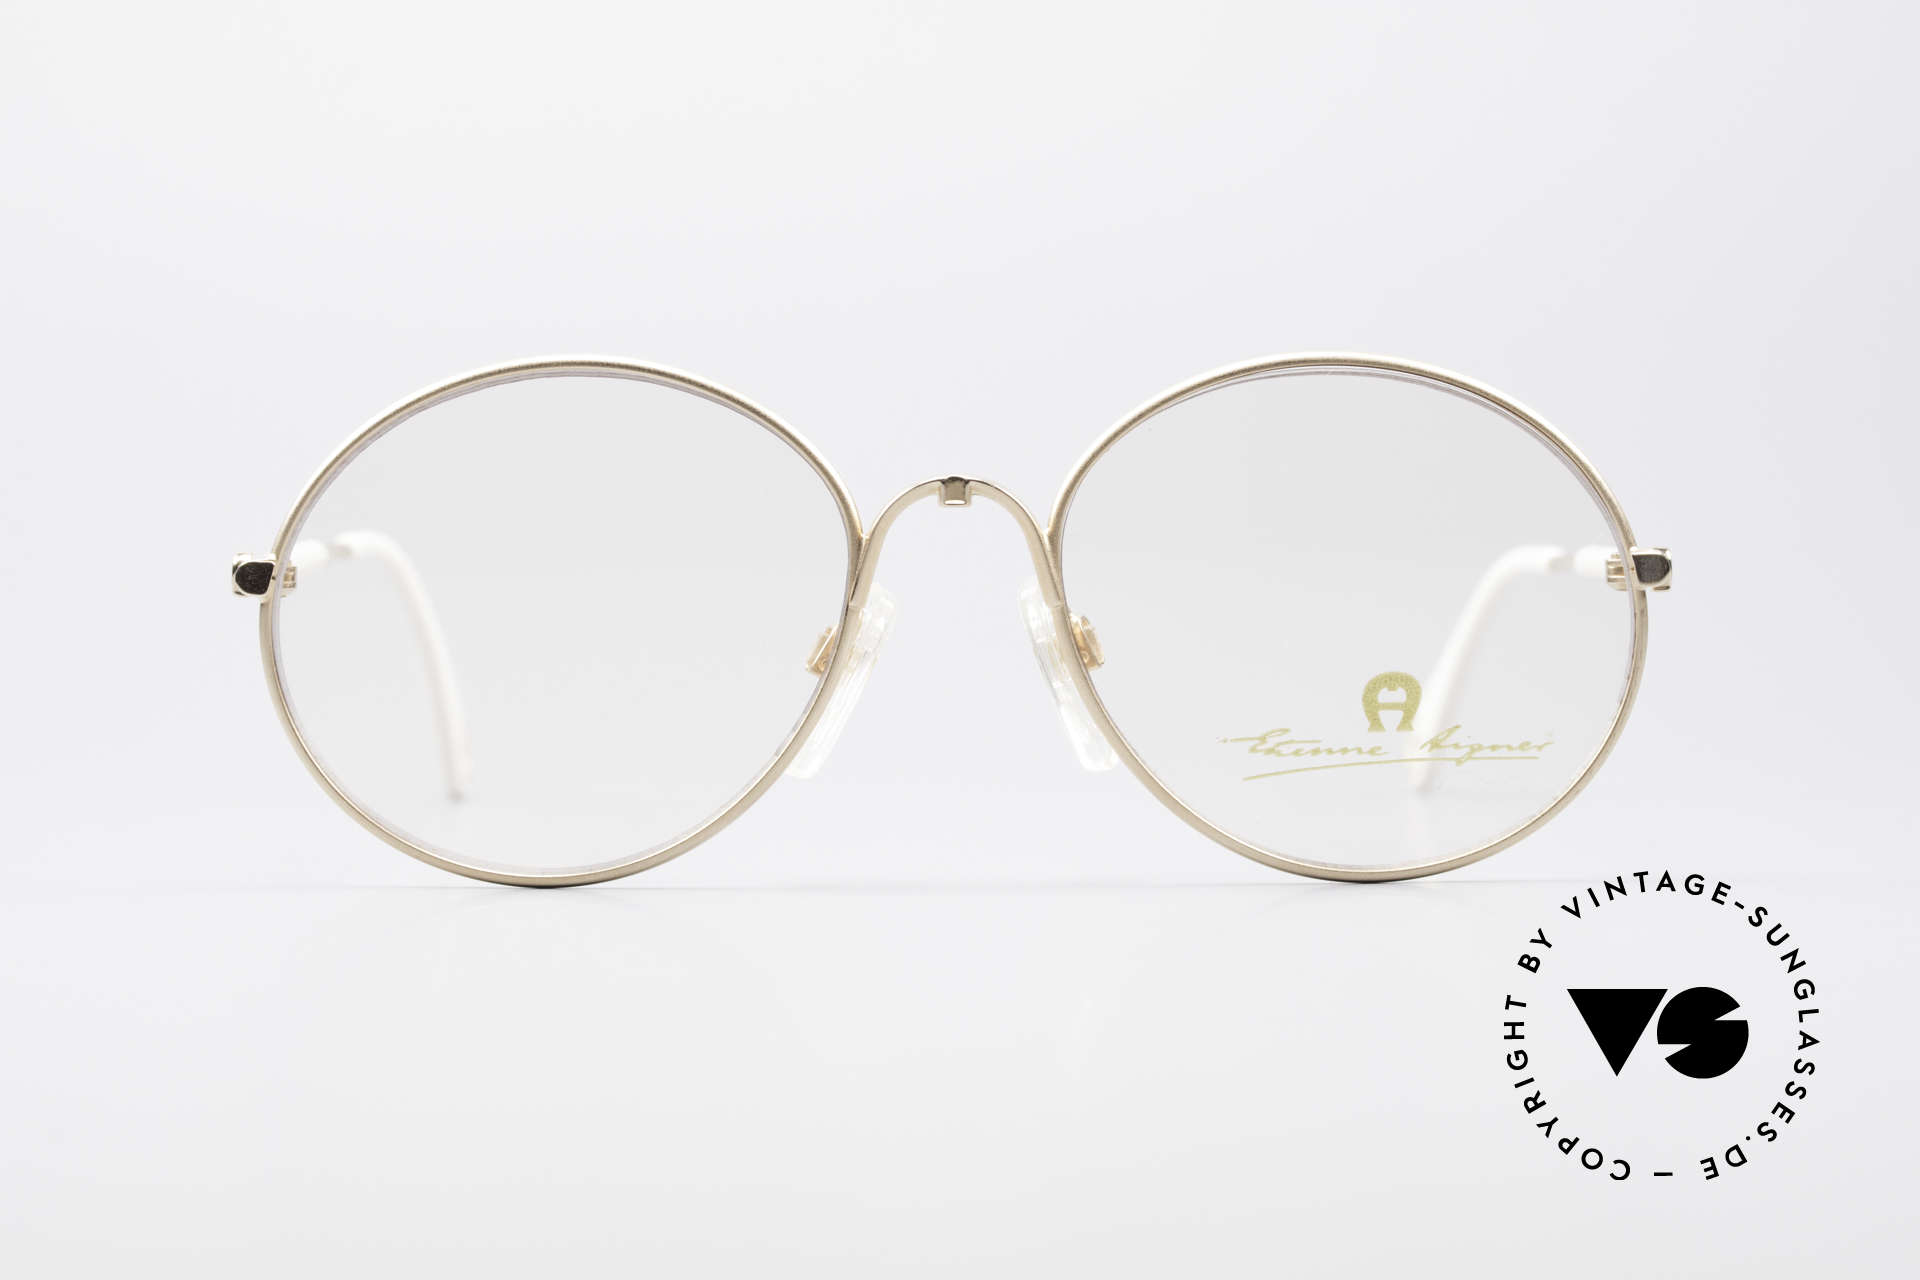 Aigner EA13 Small Round 80's Eyeglasses, round frame in SMALL size 53/18 (120mm width)!, Made for Women